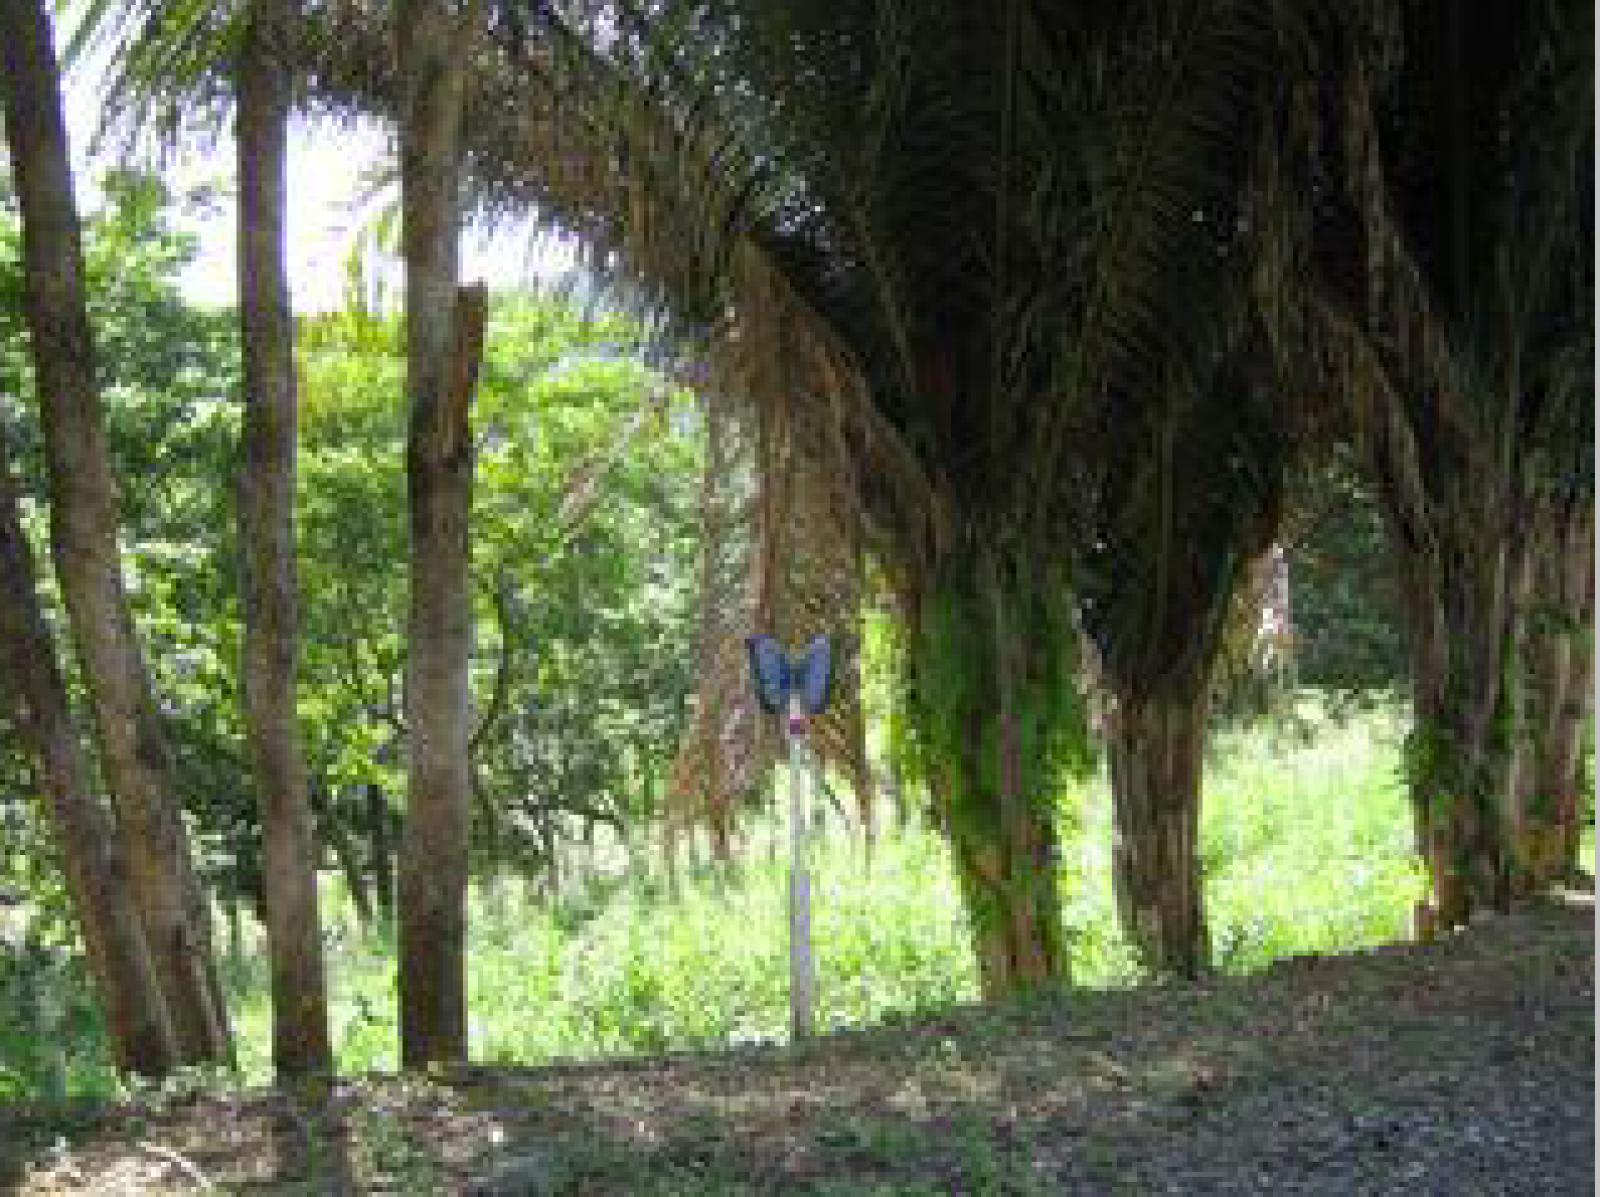 Surrounded by verdant hills and lush vegetation